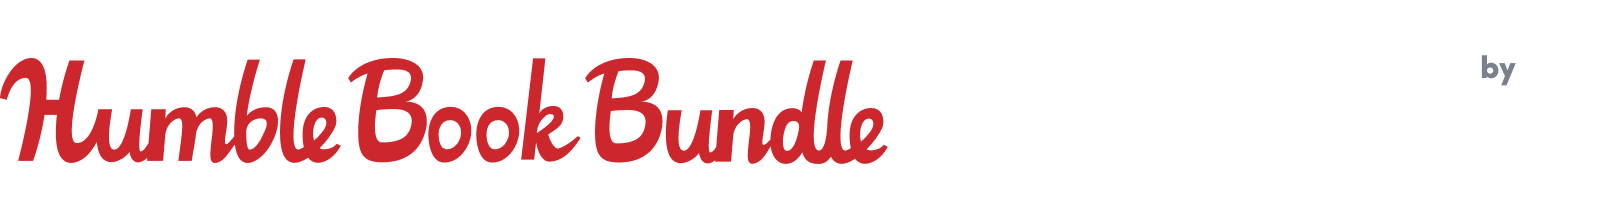 Humble Books Bundle: Fallout RPG & 3D Miniatures by Modiphius